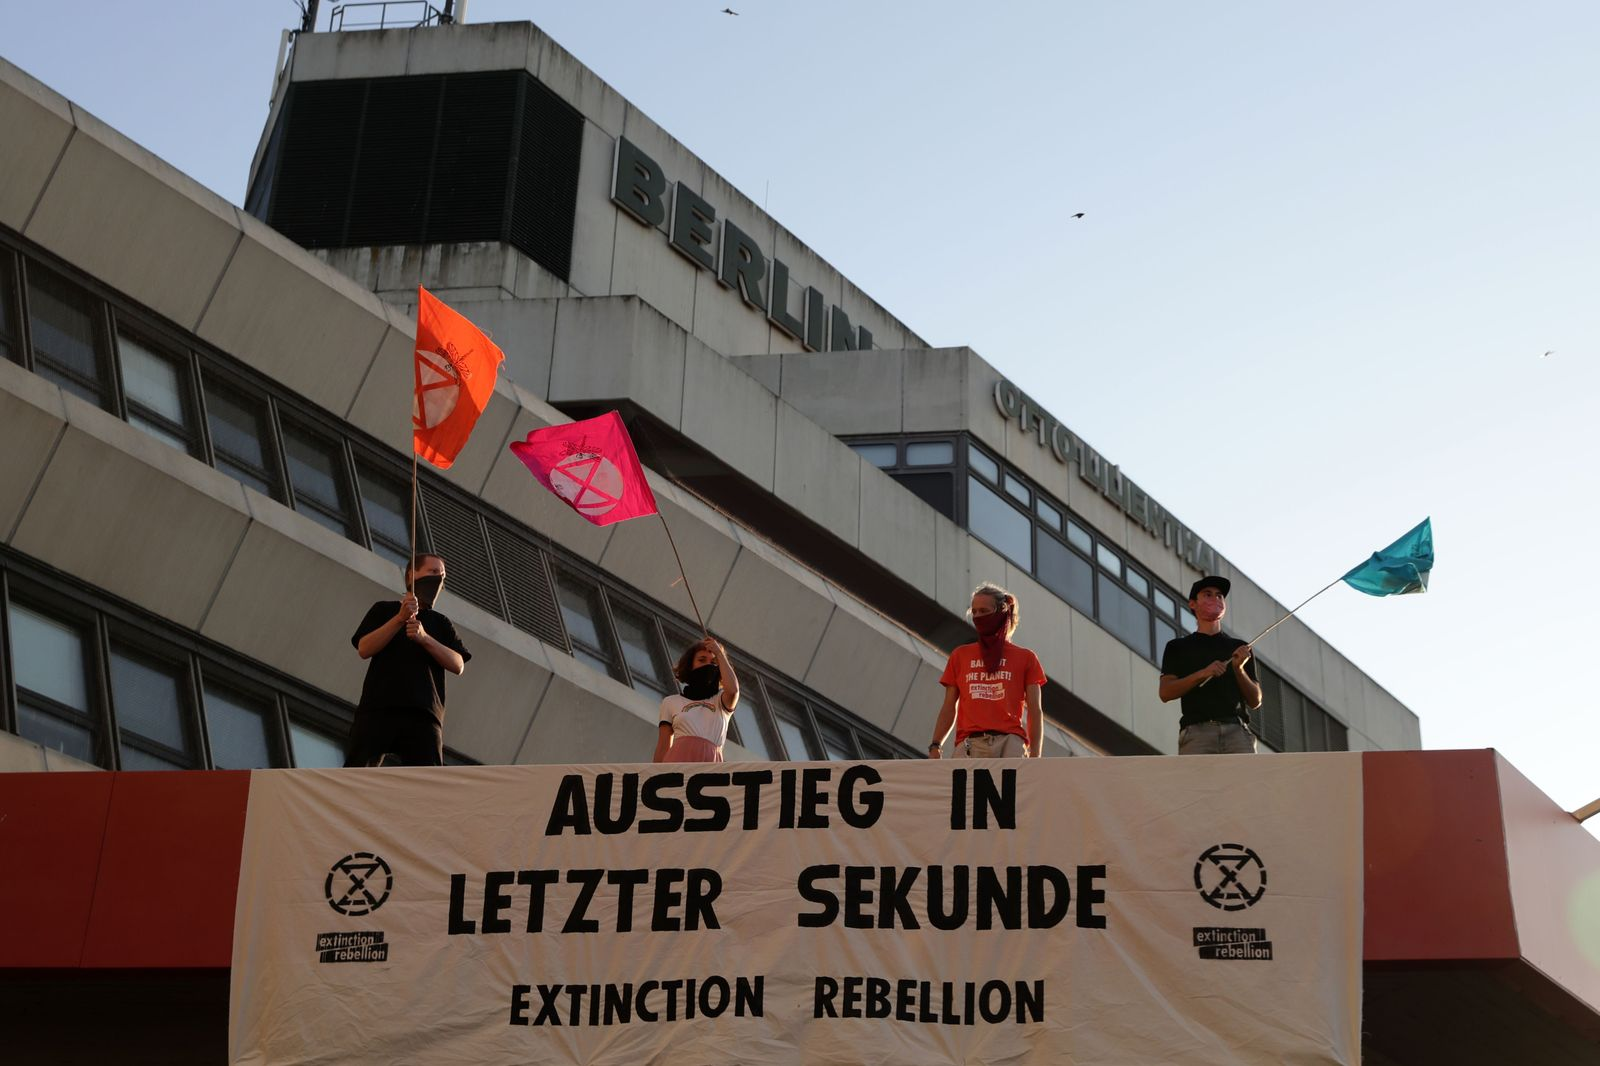 Extinction Rebellion act in Berlin, Germany - 17 Aug 2020